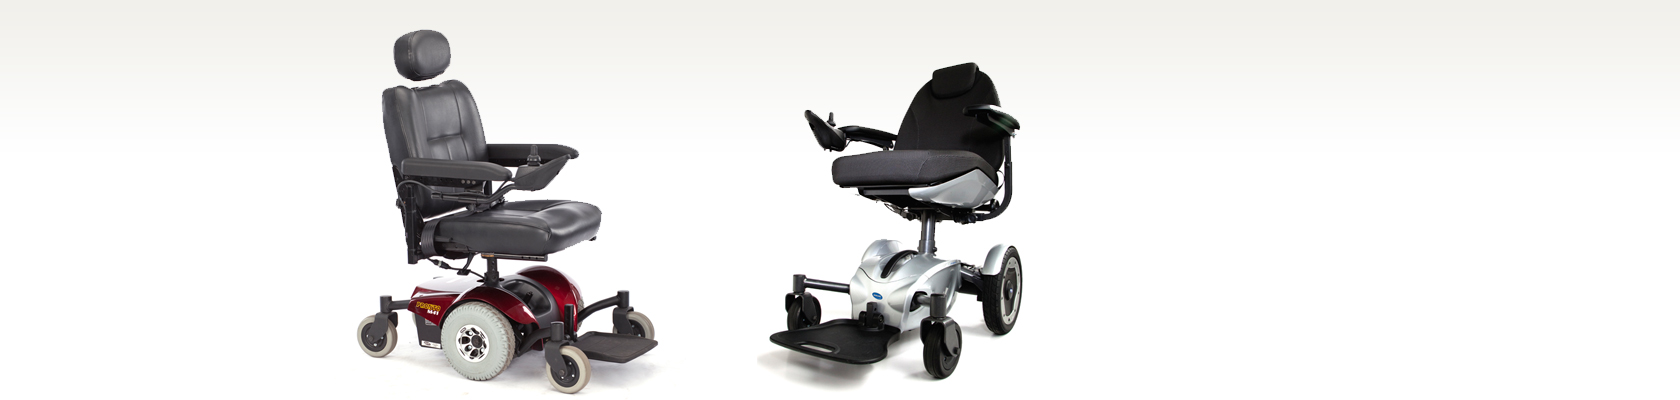 Mobility-Chairs